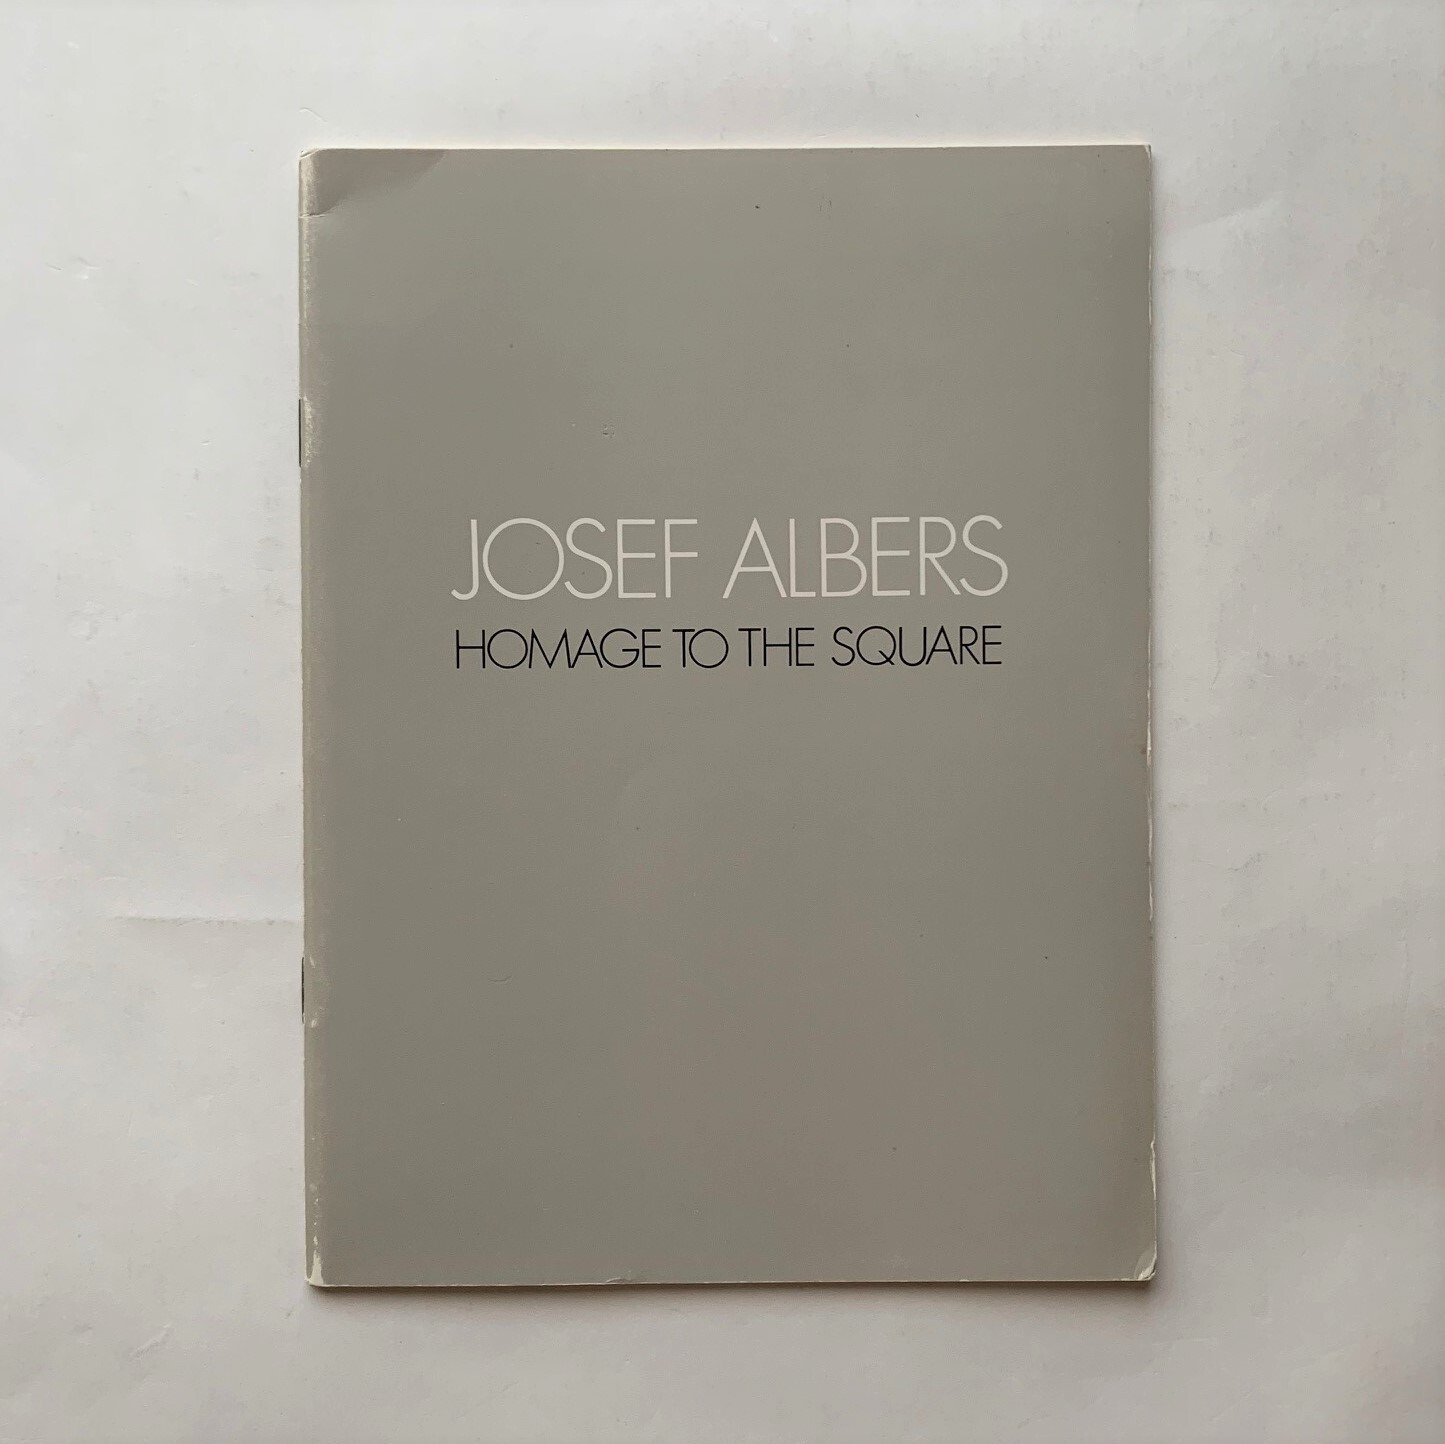 JOSEF ALBERS HOMAGE TO THE SQUARE  /  ジョゼフ・アルバース油彩展